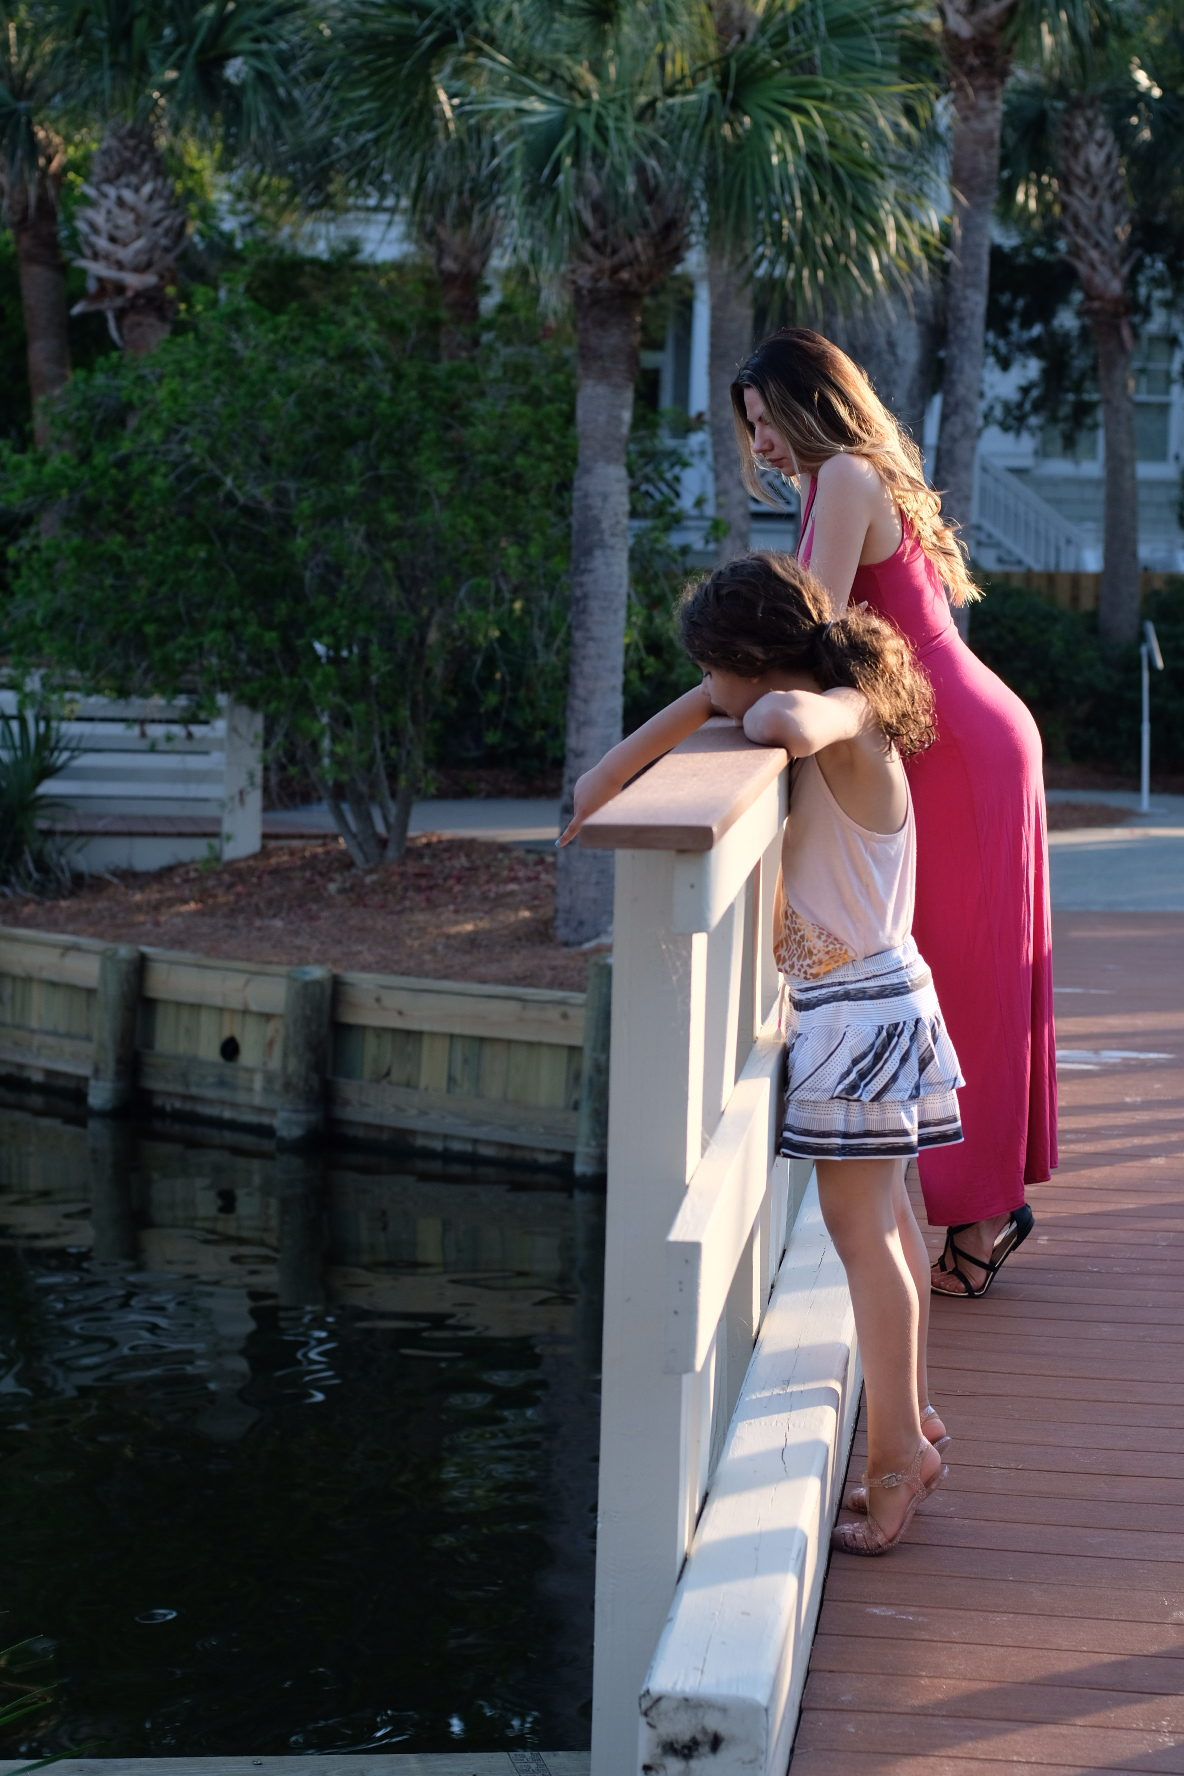 Lifestyle Blogger Chocolate and Lace shares her family vacation to Hilton Head Island with tons of photos.